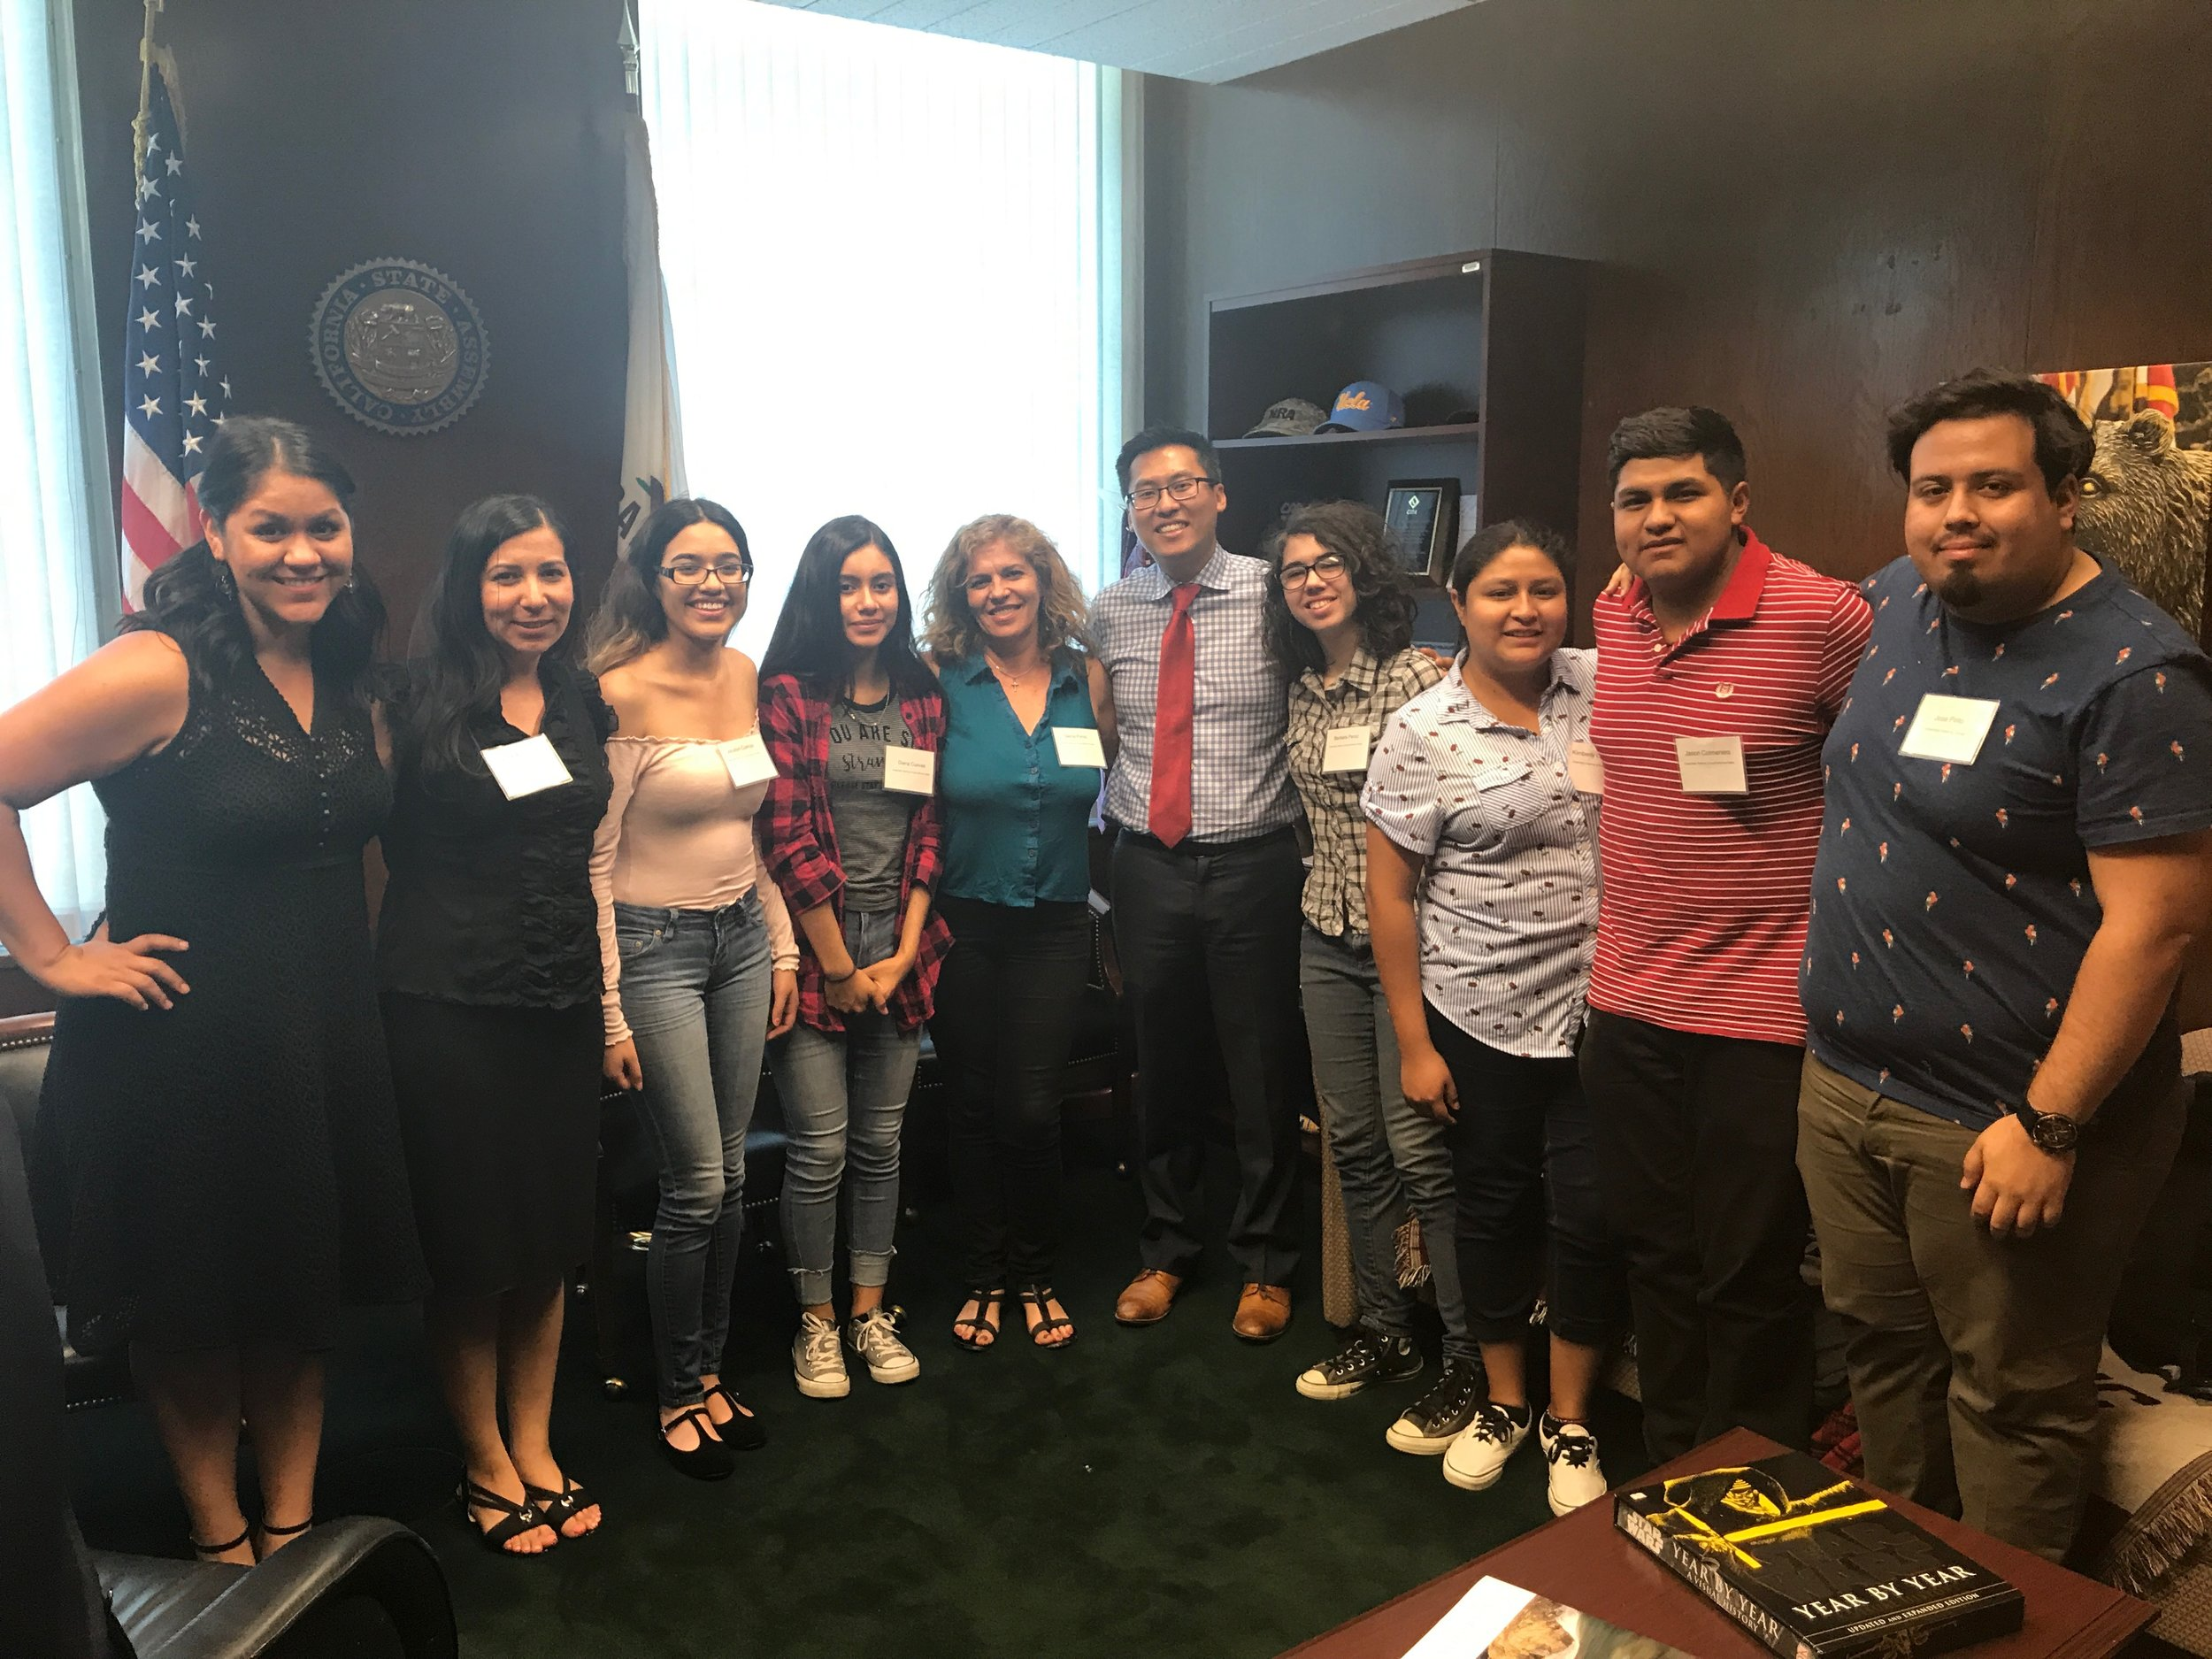 South Kern Youth Leaders Share their Work and Community's Needs to Assemblymember Fong